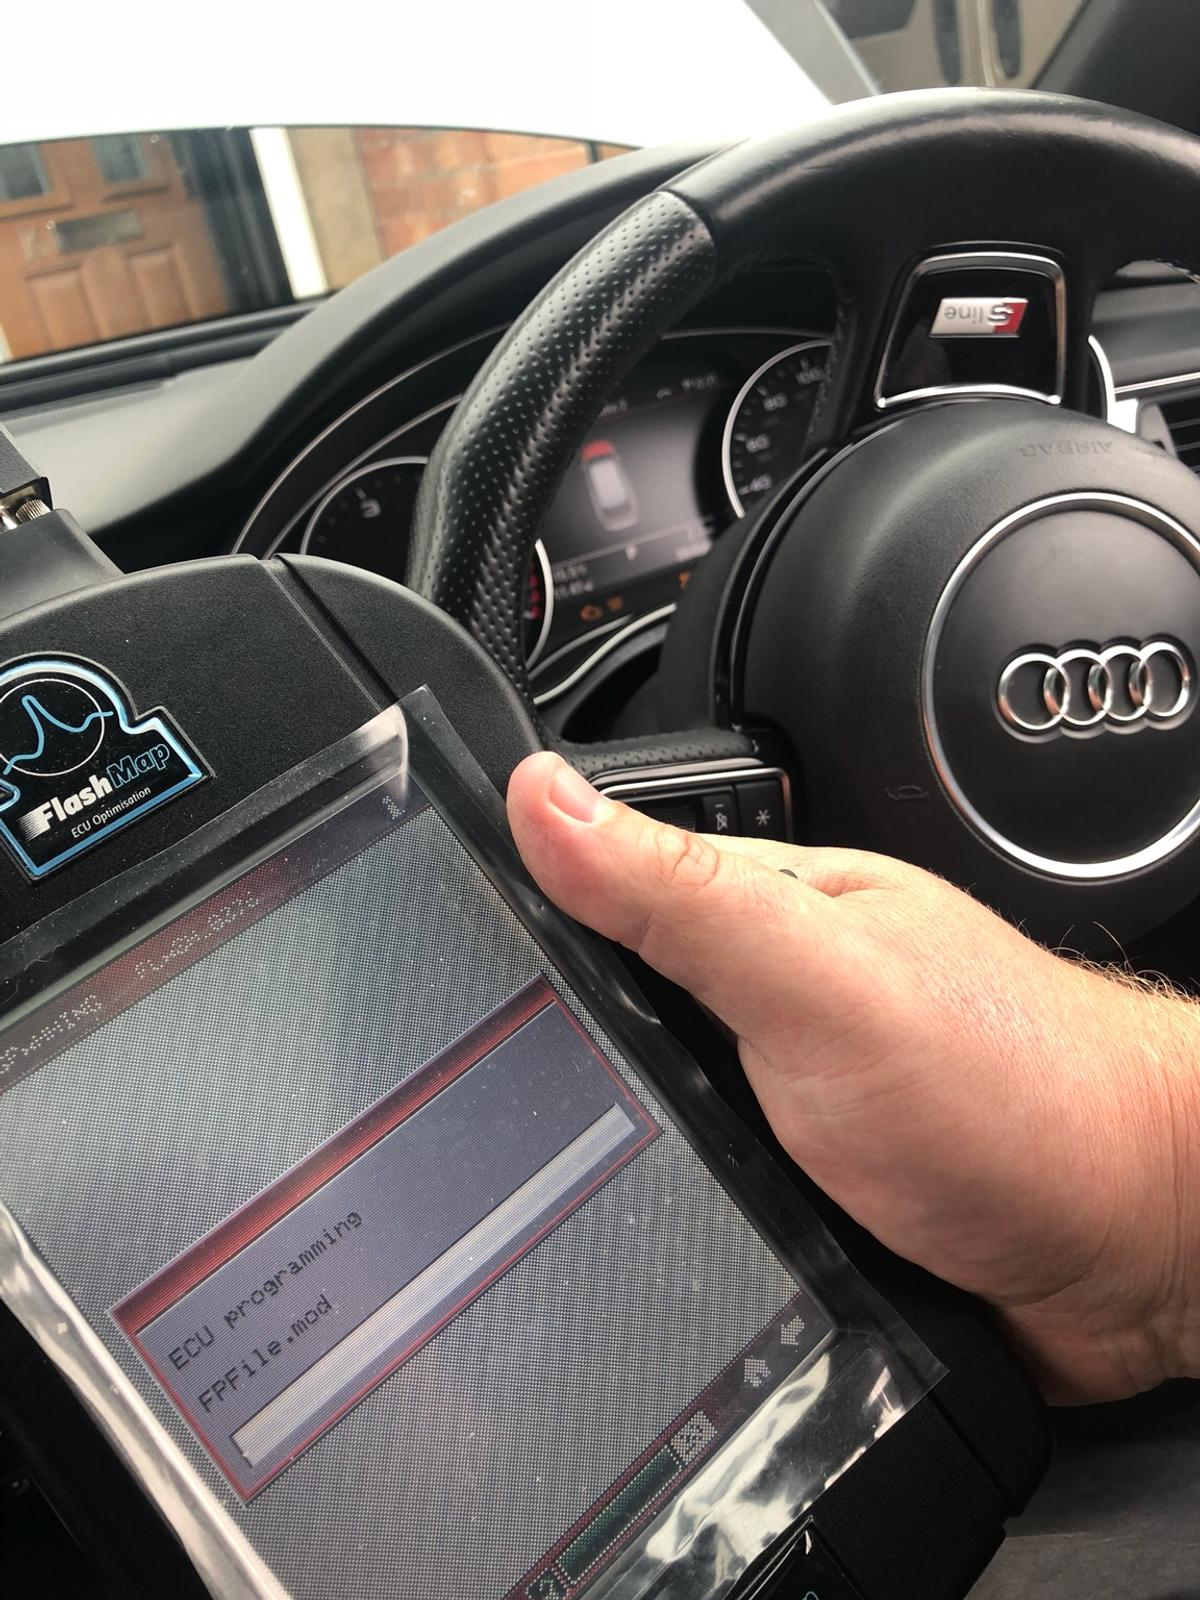 Mobile Ecu Remapping/Tuning in LE10 Hinckley for £165 00 for sale